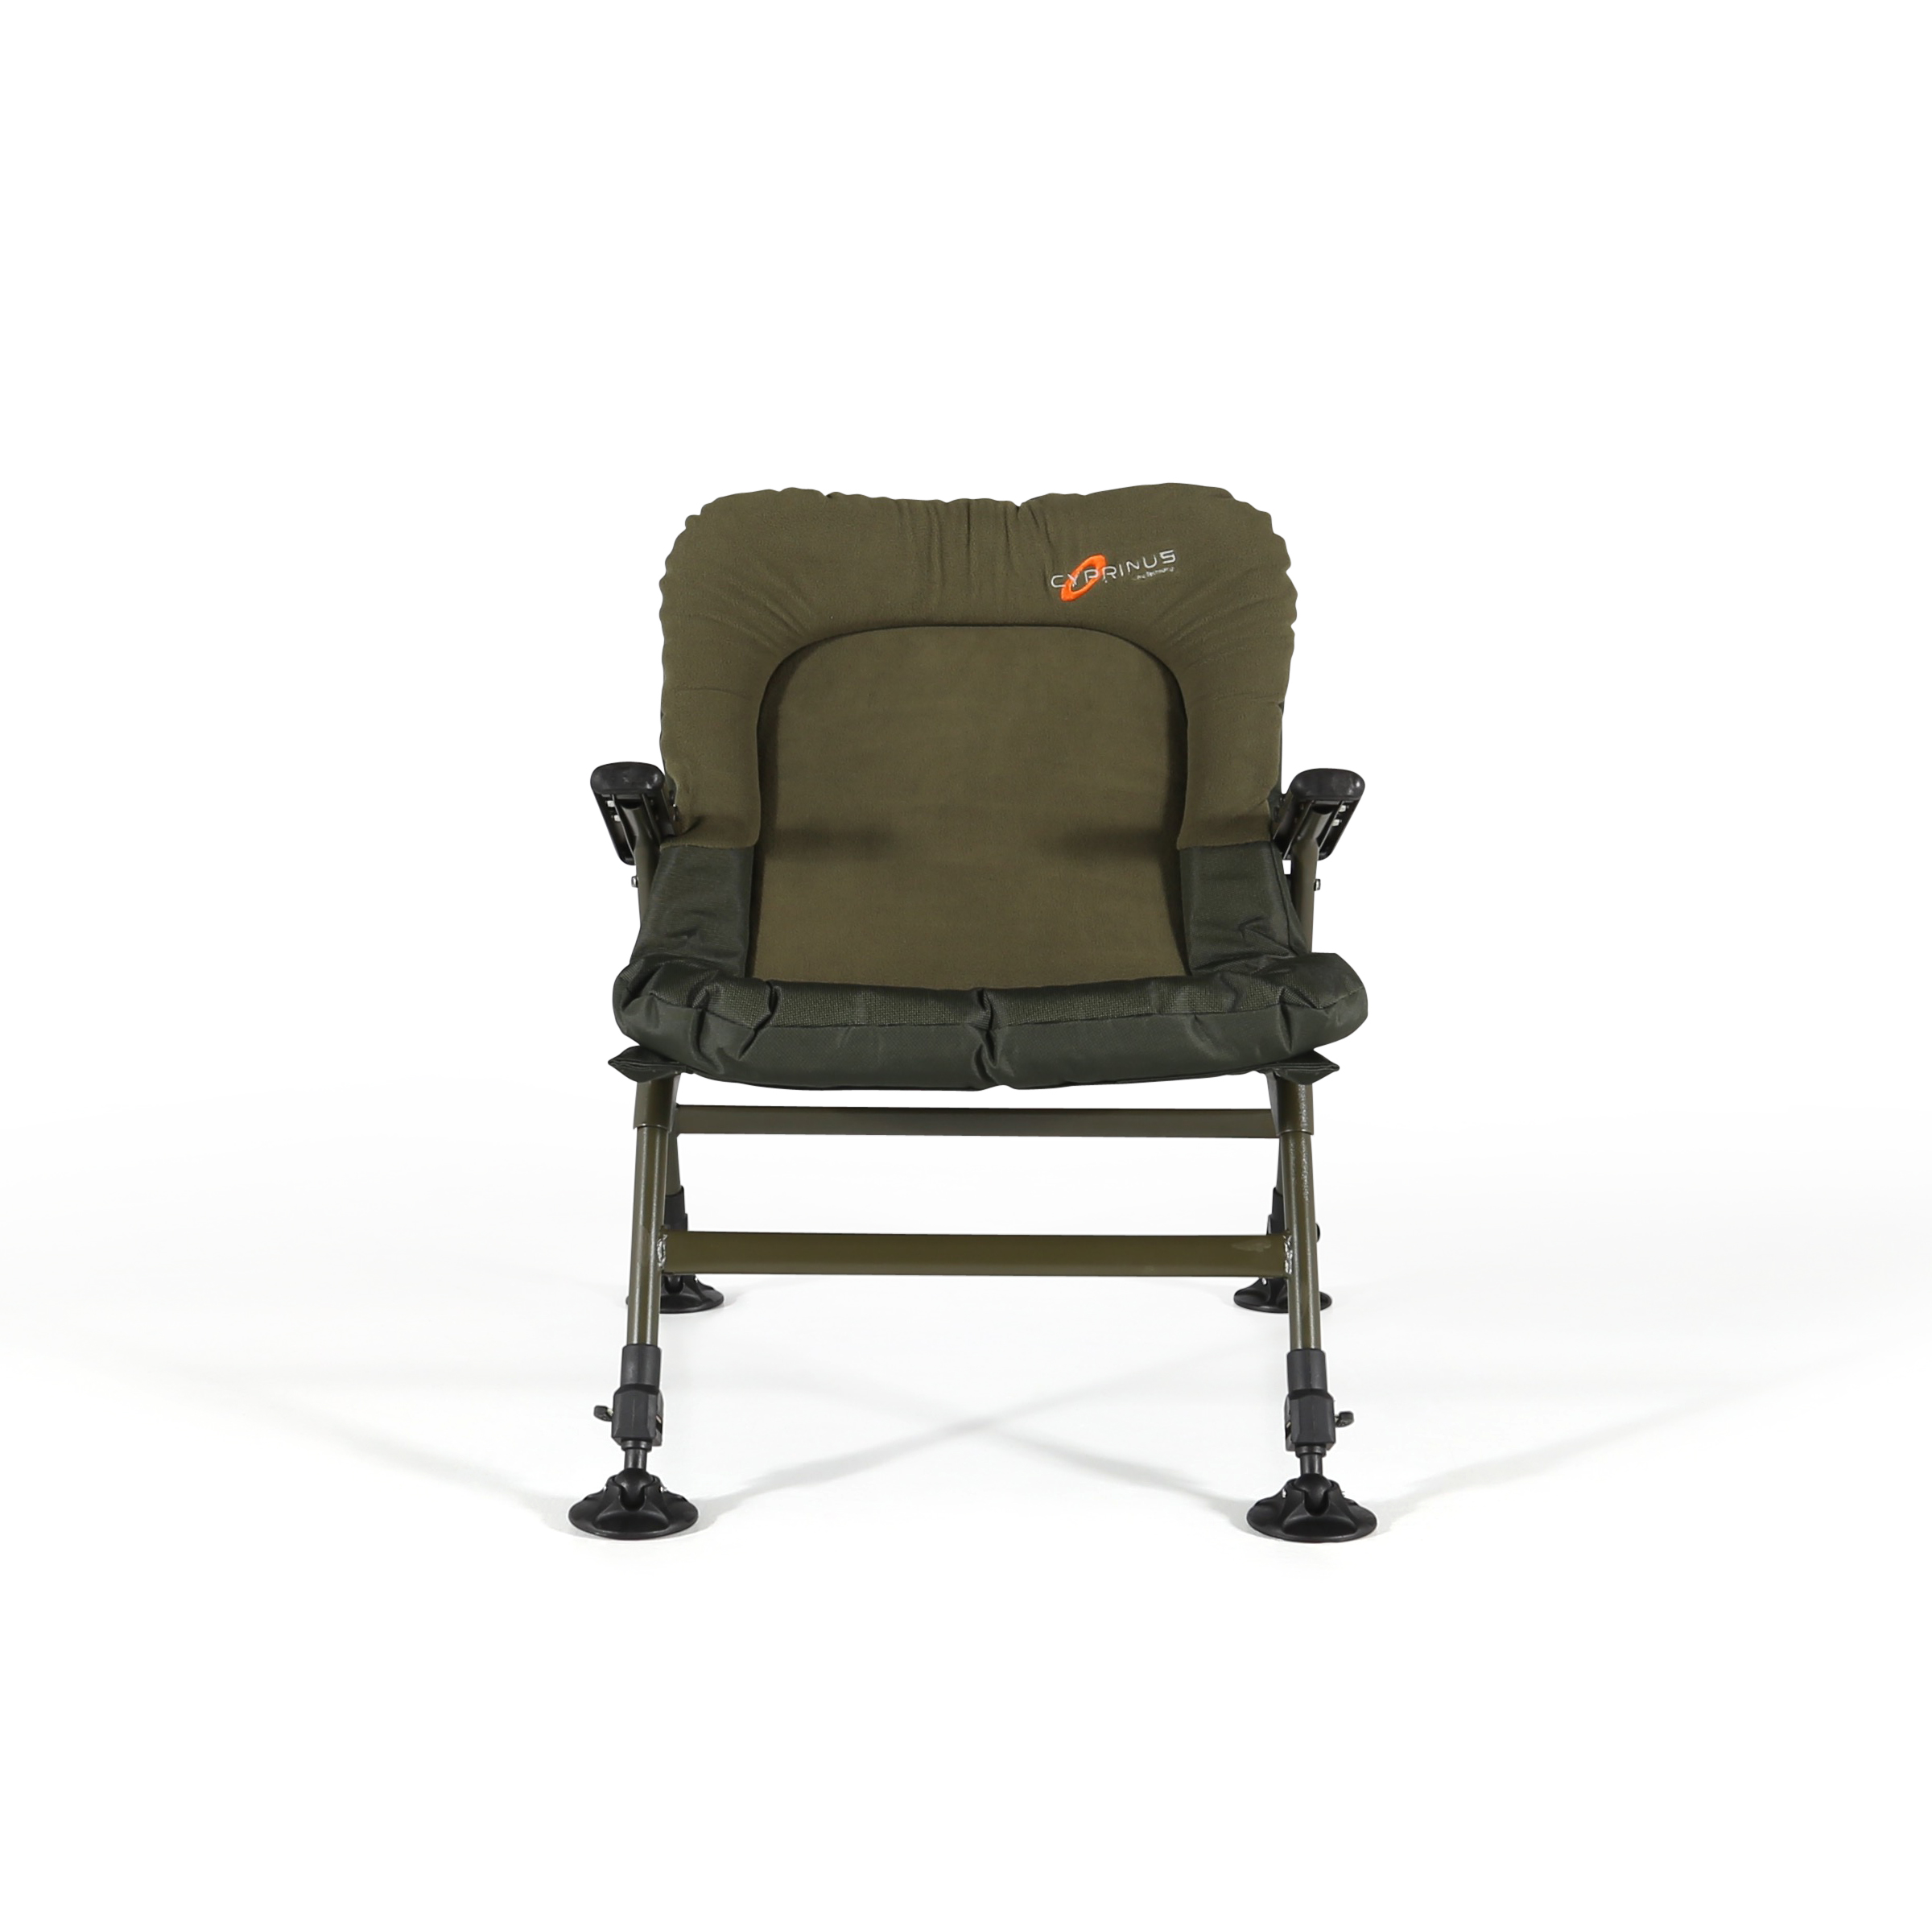 fishing chair with arms suv captain chairs cyprinus memory foam lightweight padded carp coarse